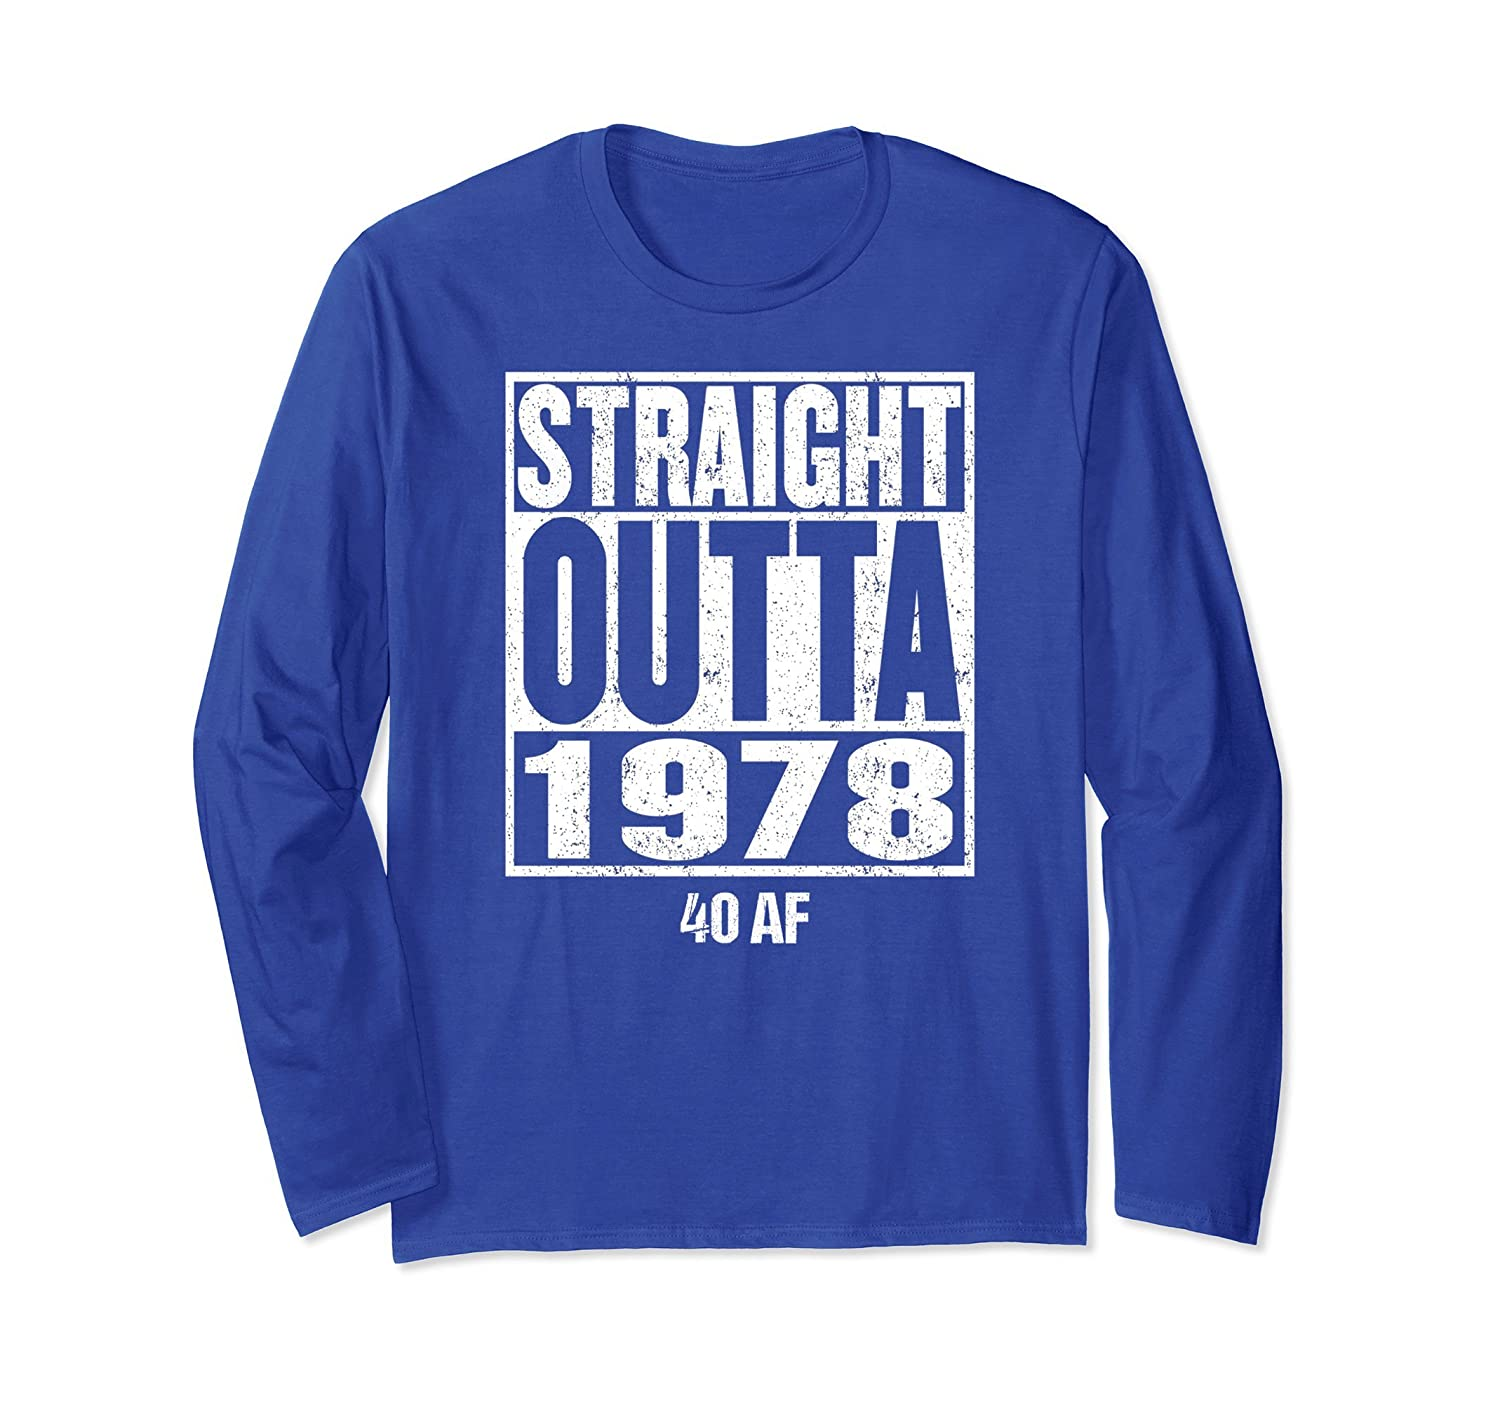 40th Birthday STRAIGHT OUTTA 1978 Long Sleeve Shirt 40 AF-alottee gift